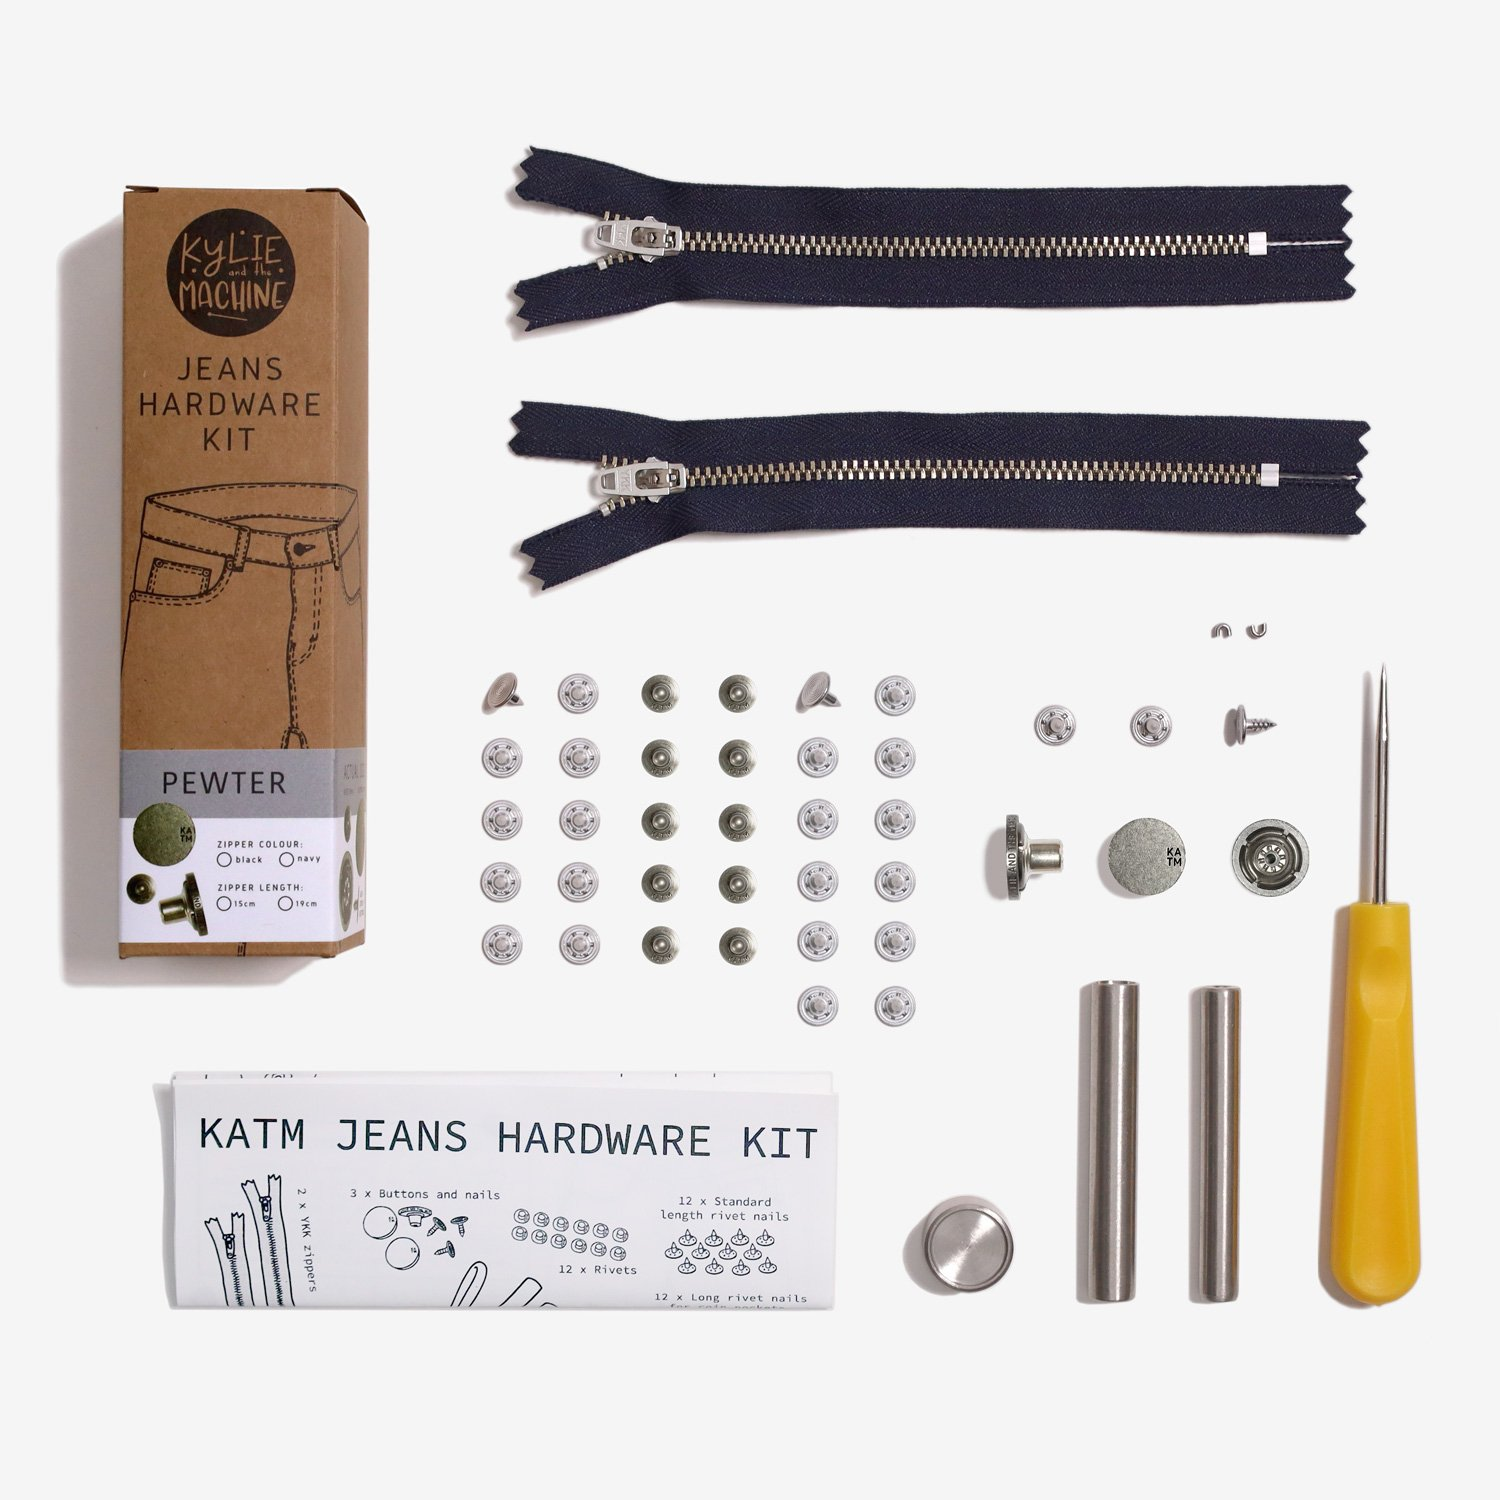 Kylie and the Machine Jeans Hardware Kit